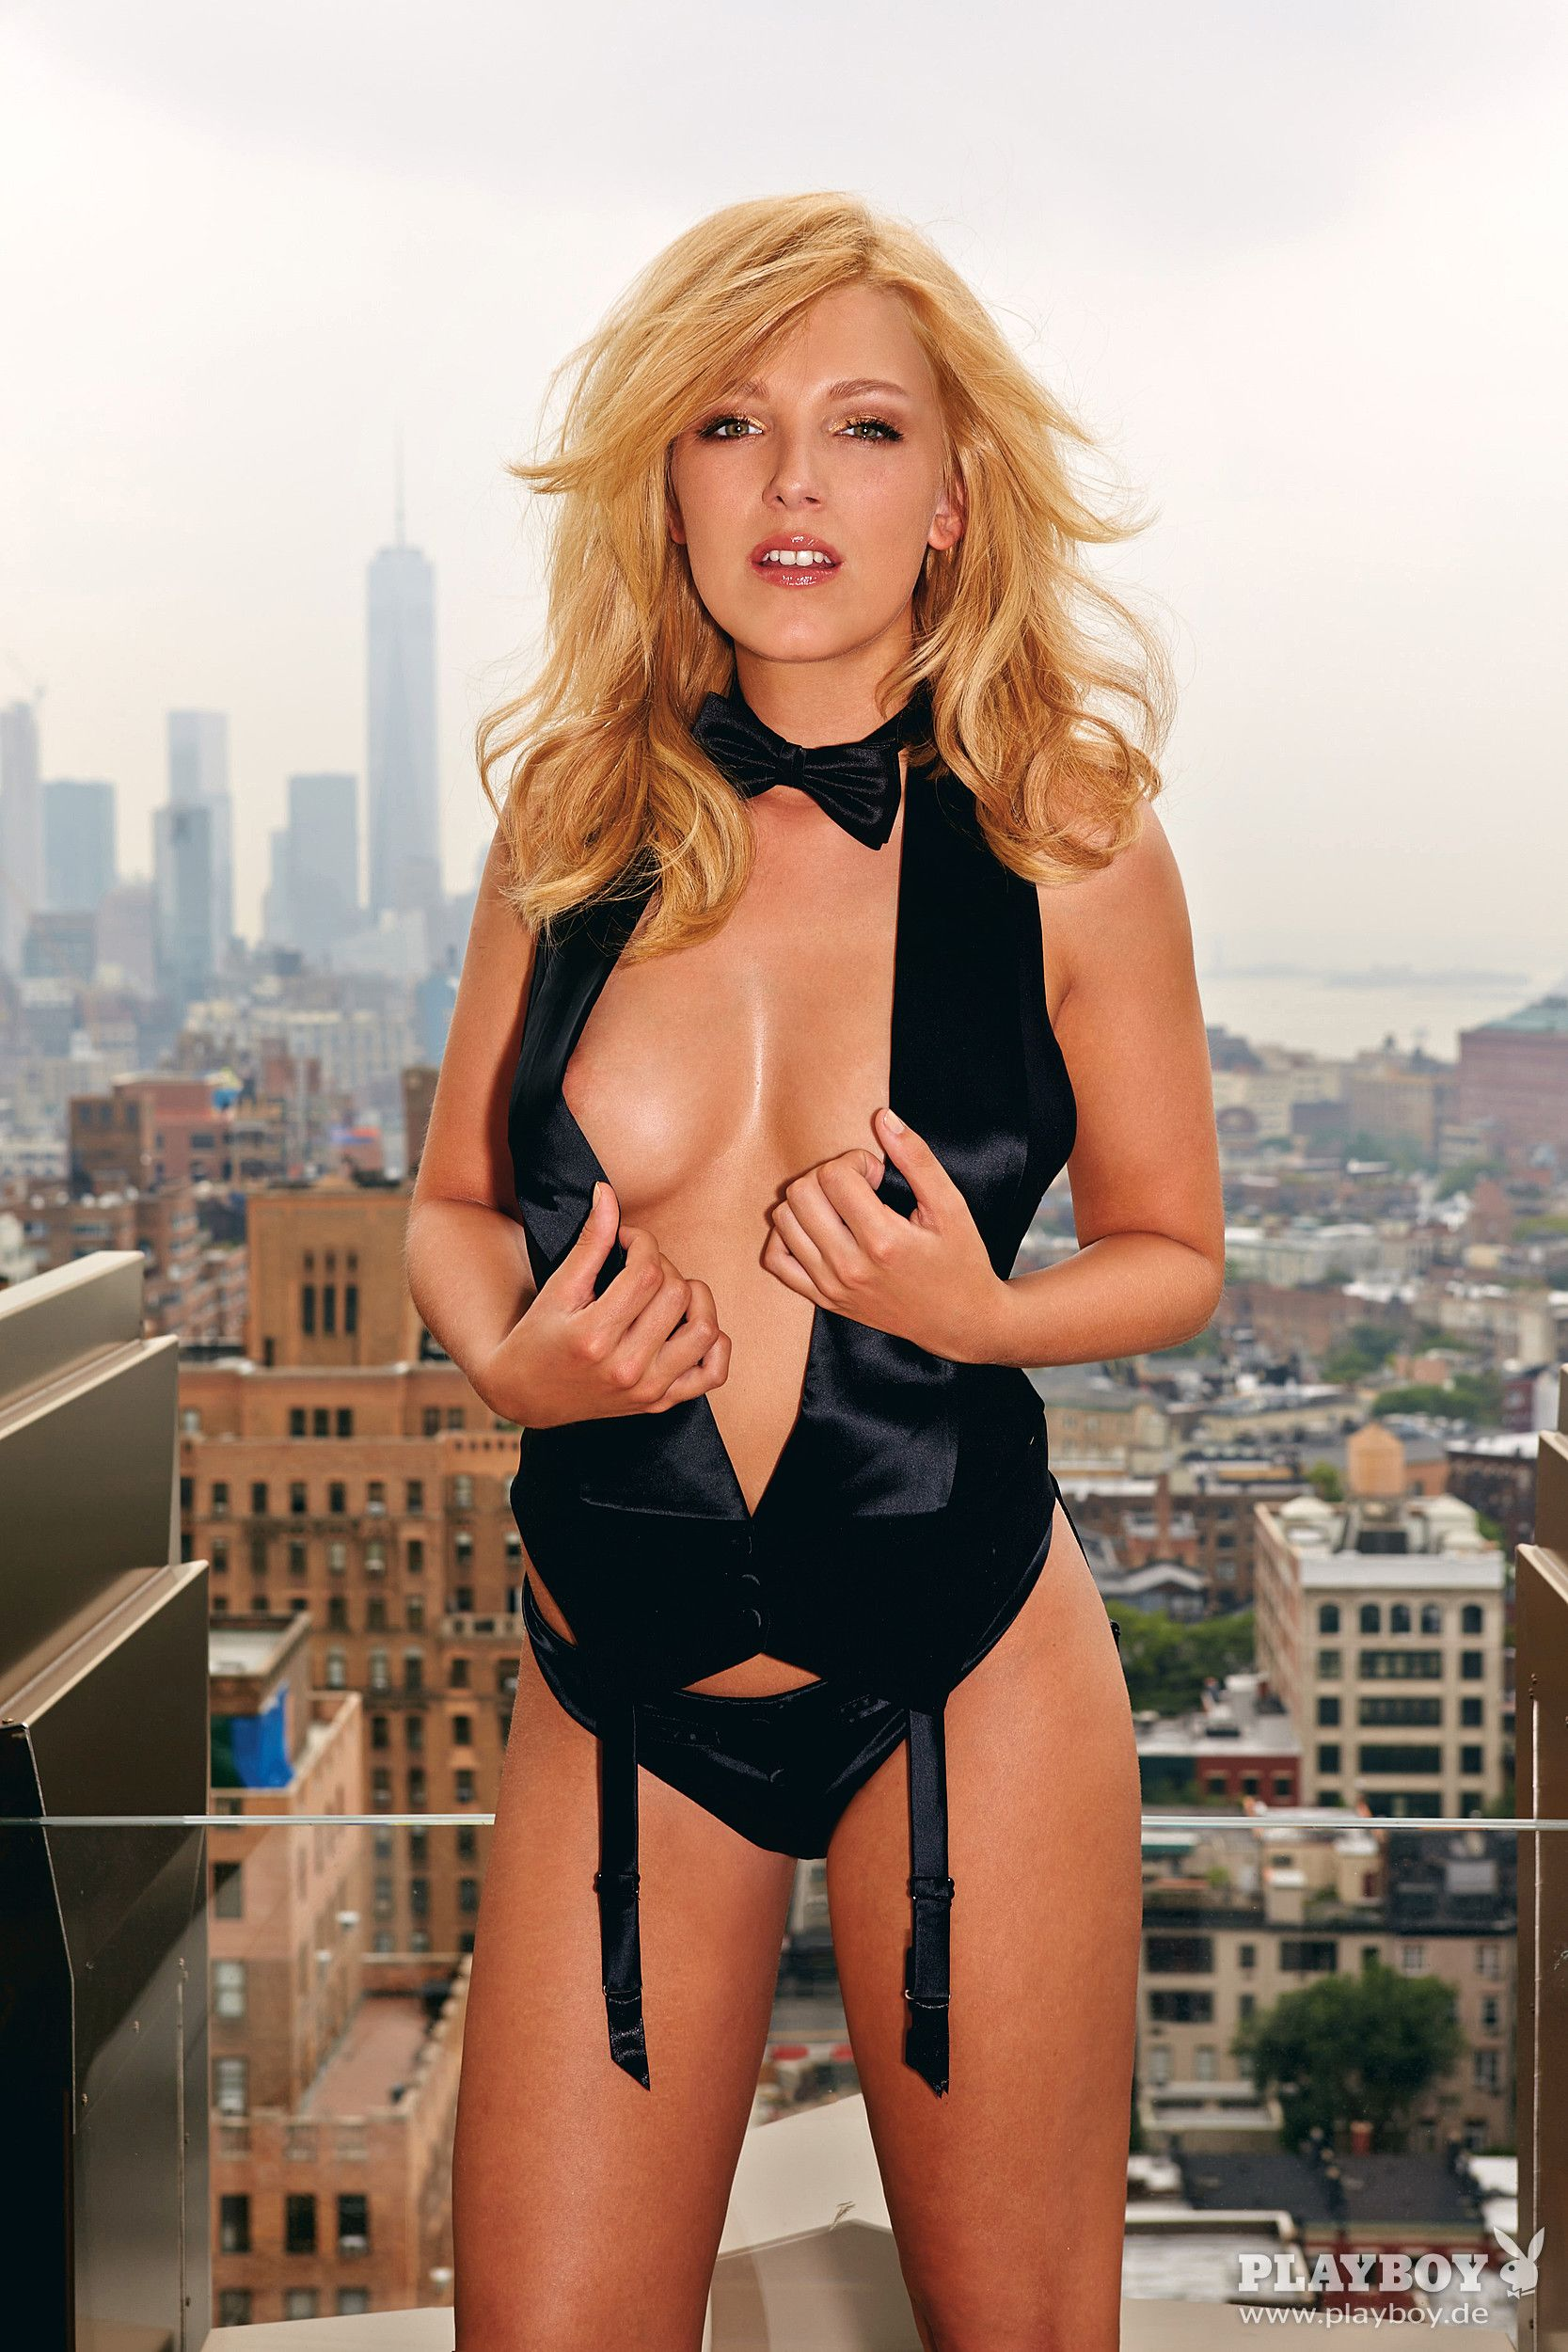 Isabell horn playboy germany april 2015 1